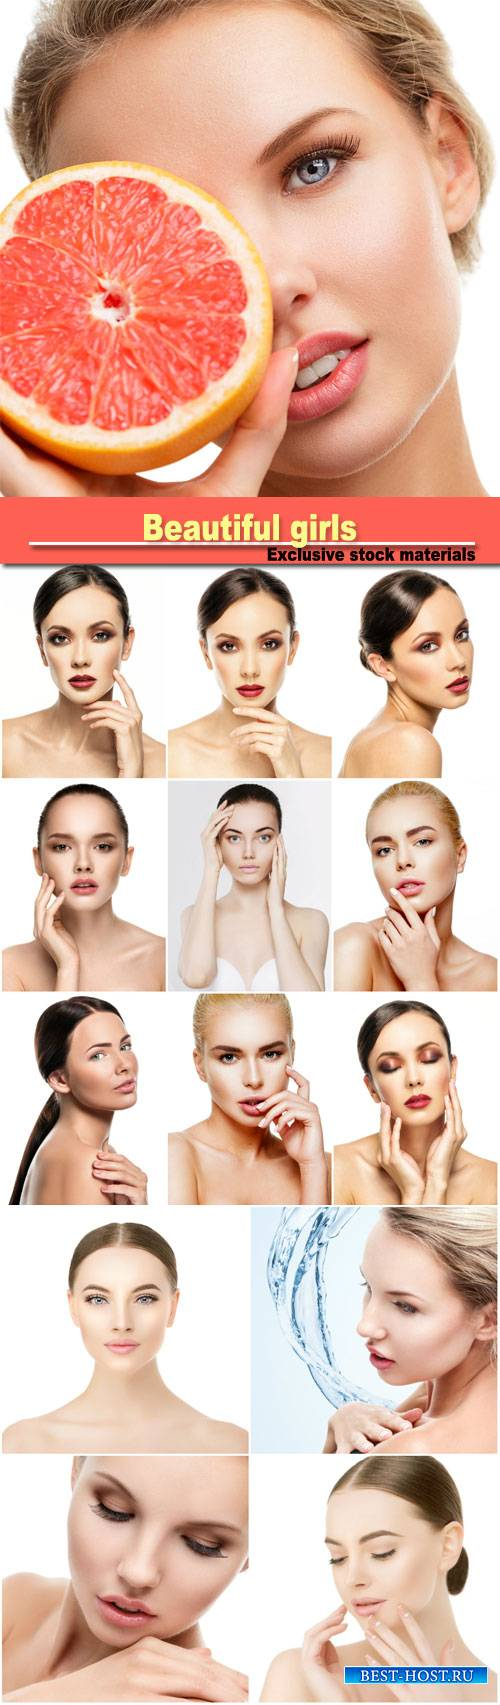 Beautiful girls, beauty care, make-up